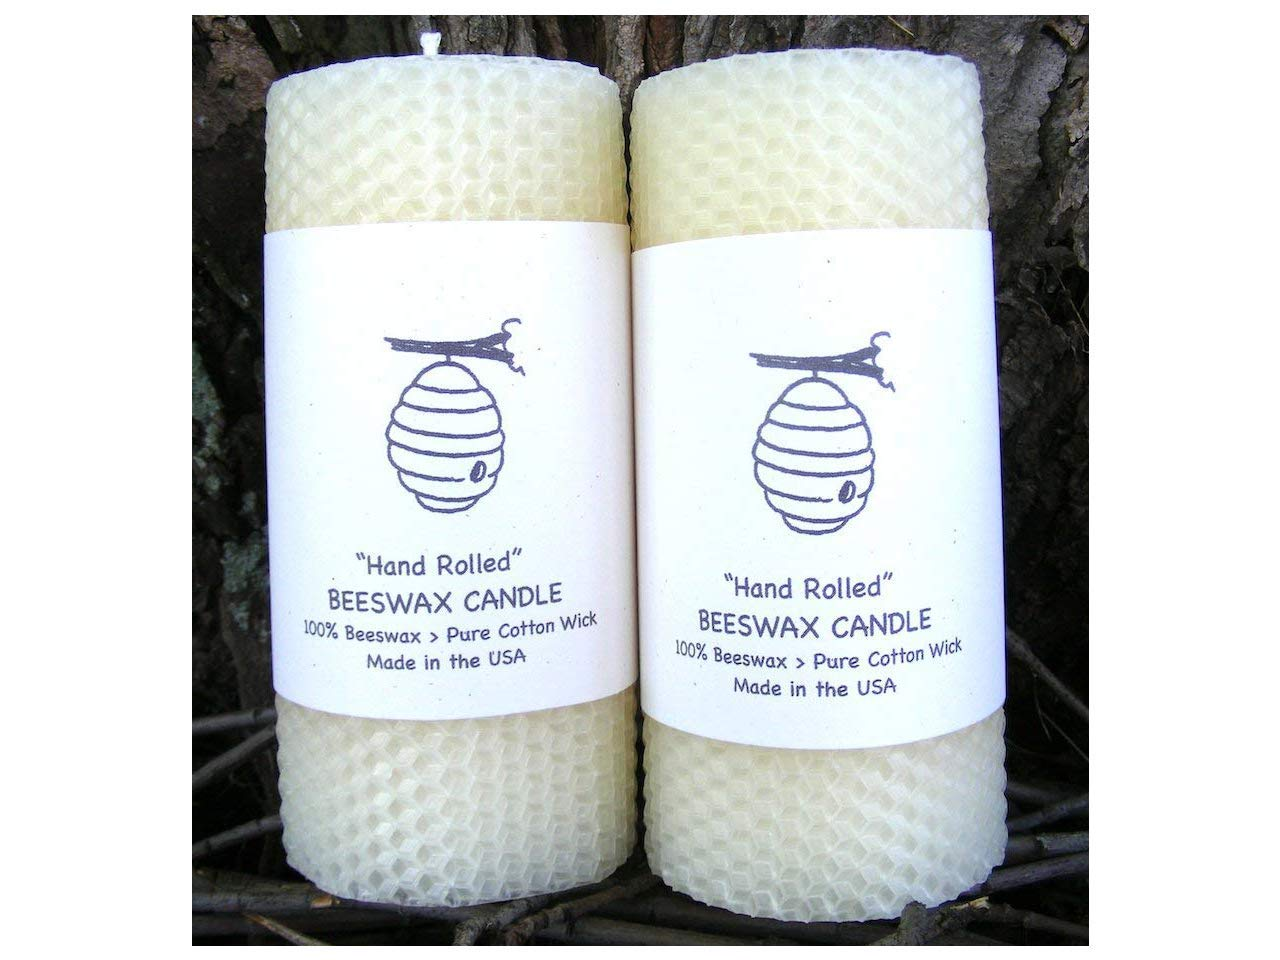 Edinboro Creations 100% Beeswax Pillar Candles - Set of Two - 5.5'' Pillars - White (Ivory) Beeswax